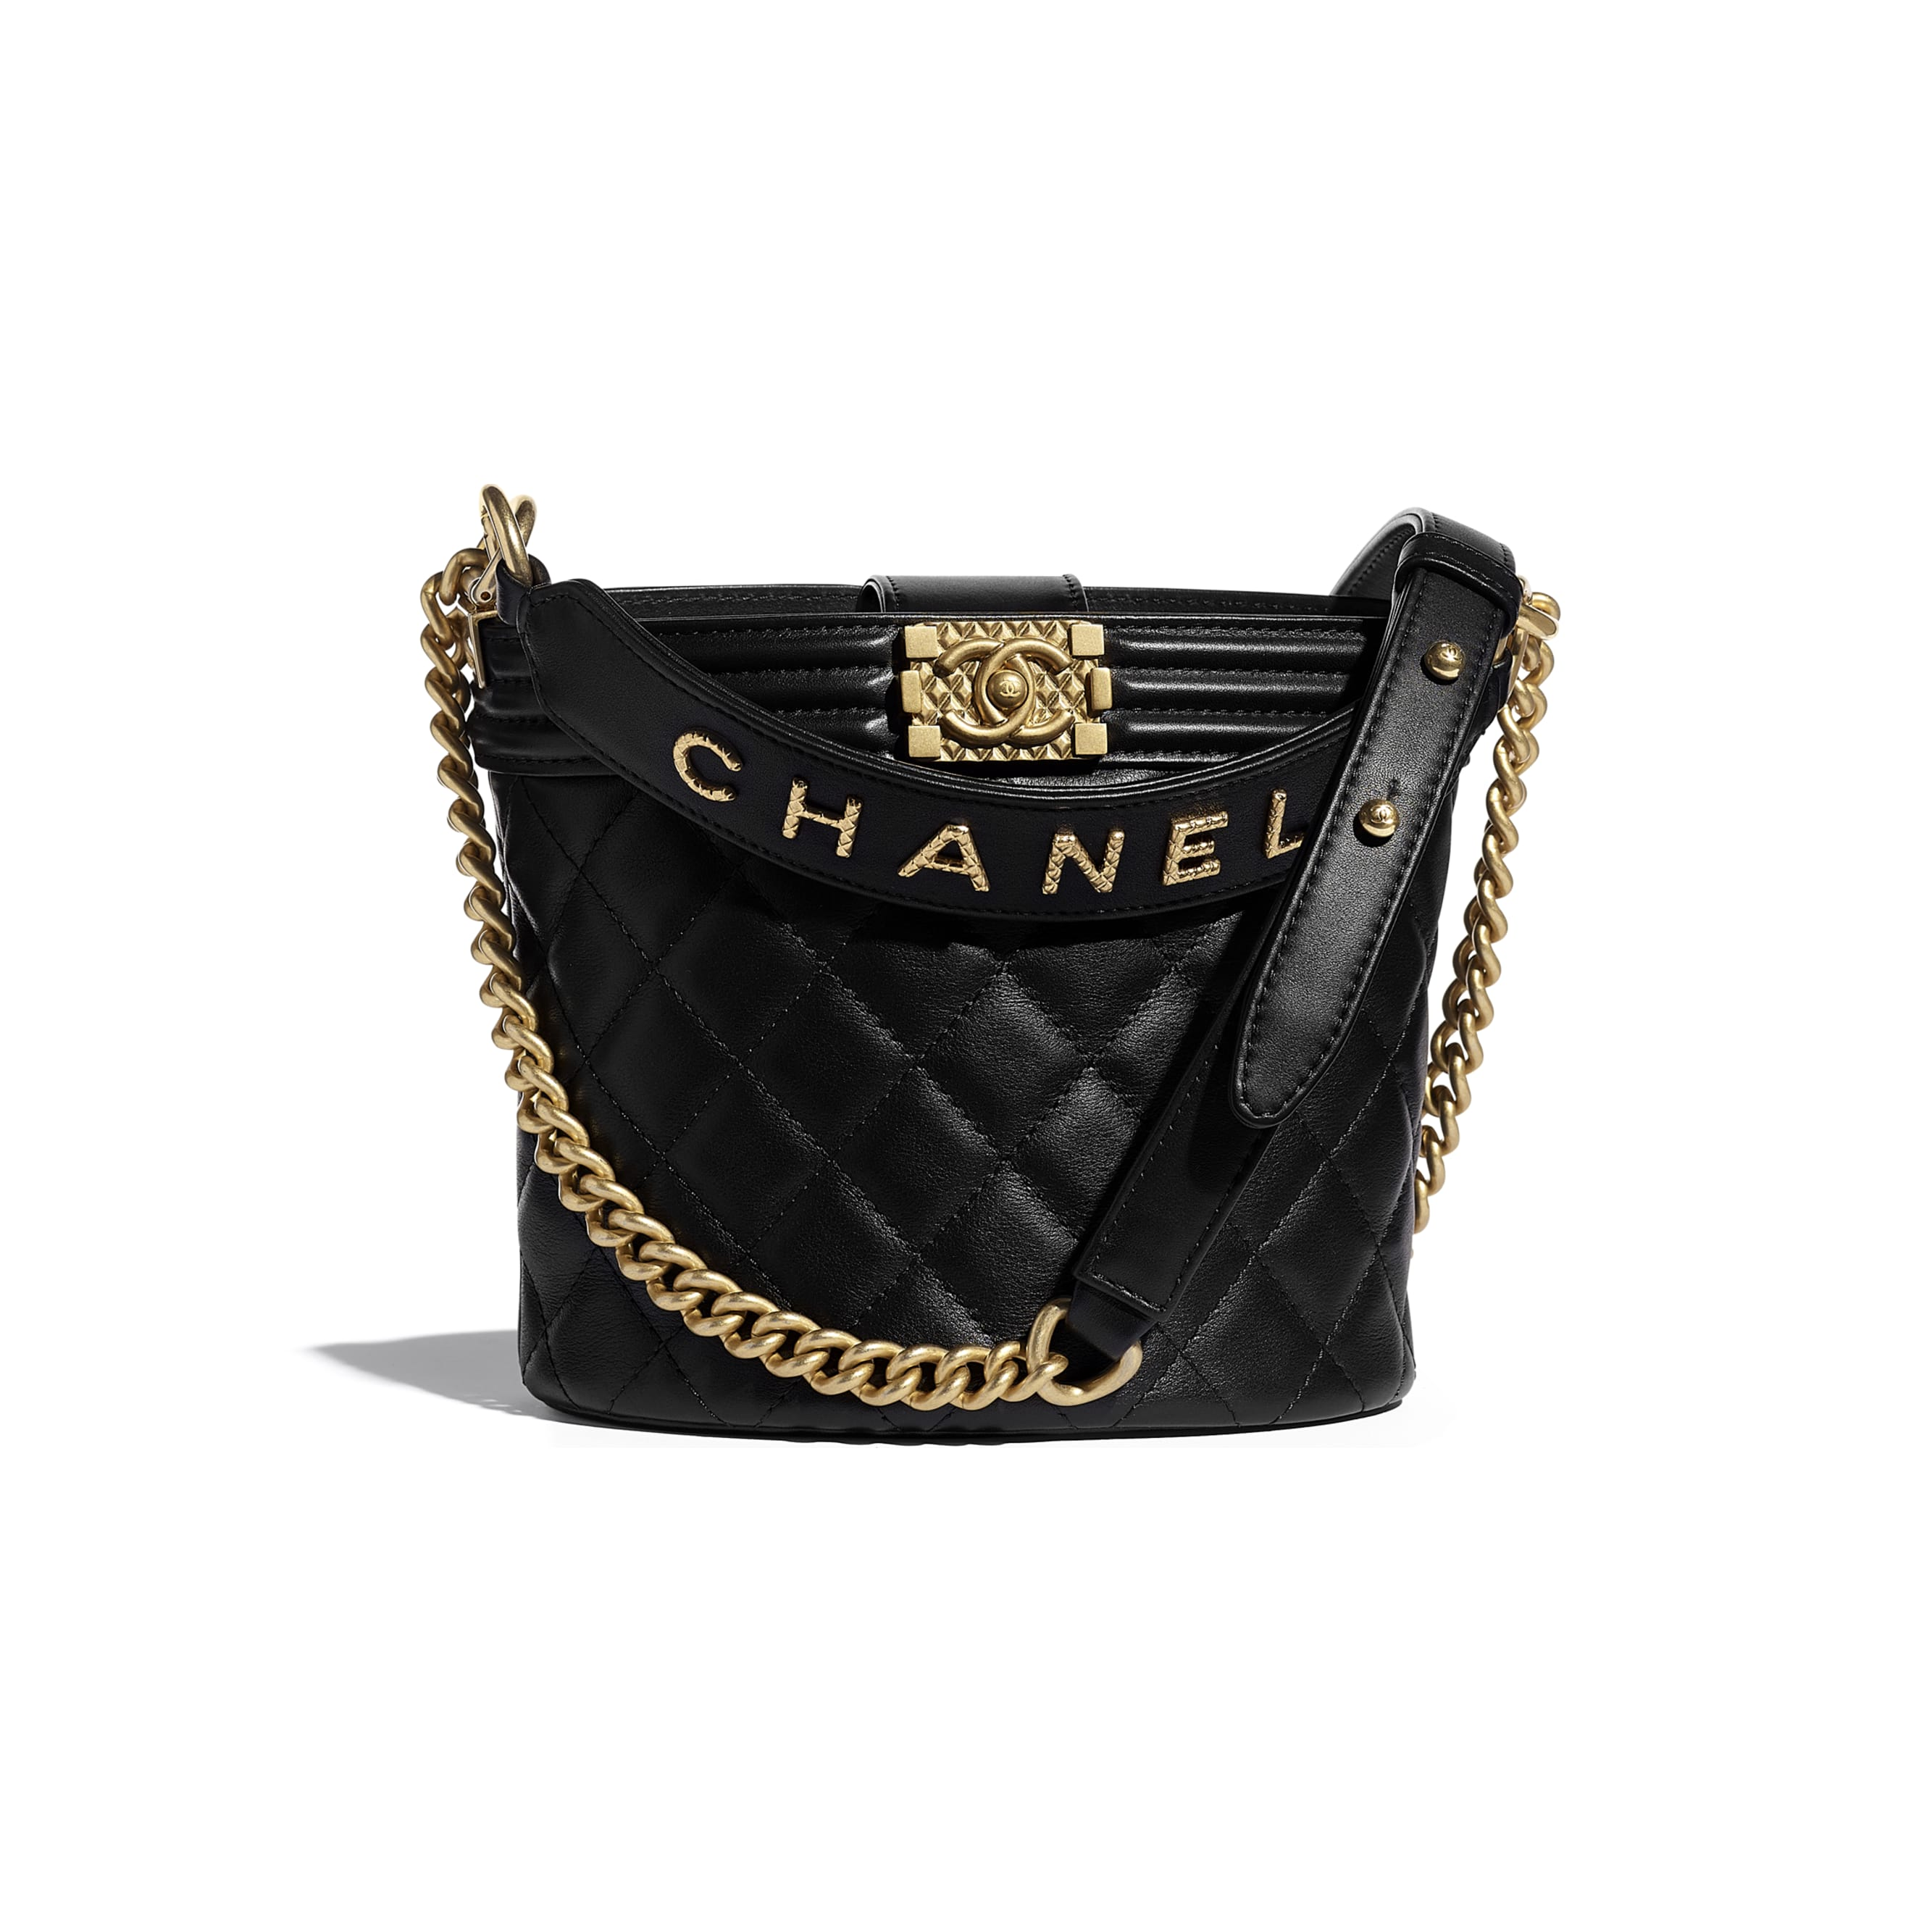 Small Bucket Bag - Black - Calfskin & Gold-Tone Metal - CHANEL - Default view - see standard sized version